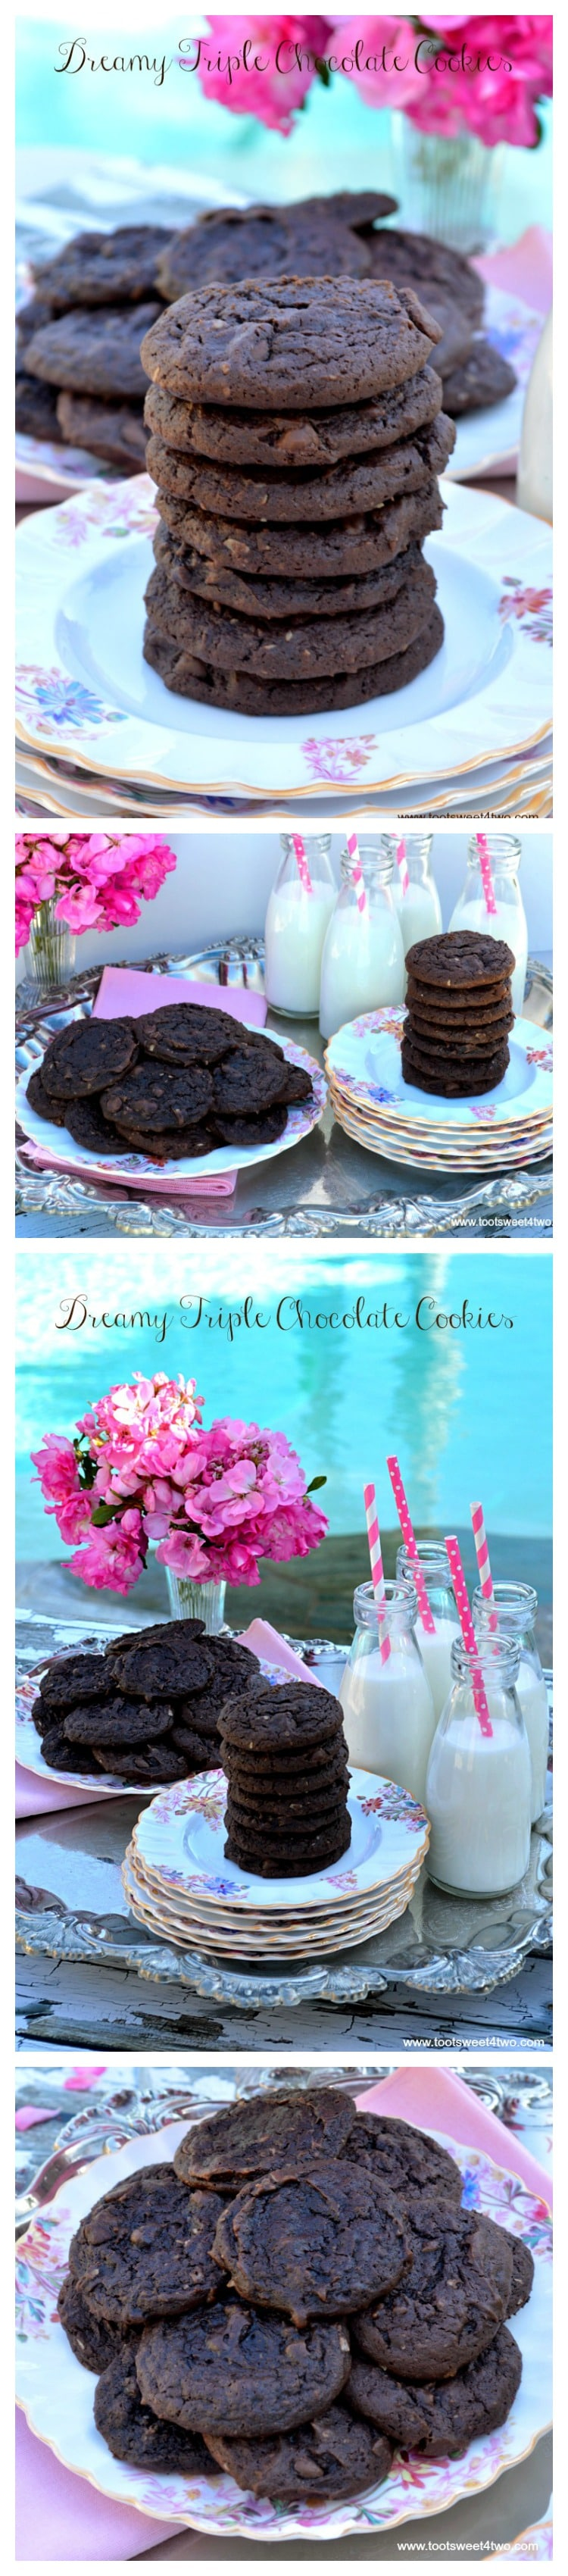 Dreamy Triple Chocolate Cookies - the best chocolate cookie made with a cake mix!